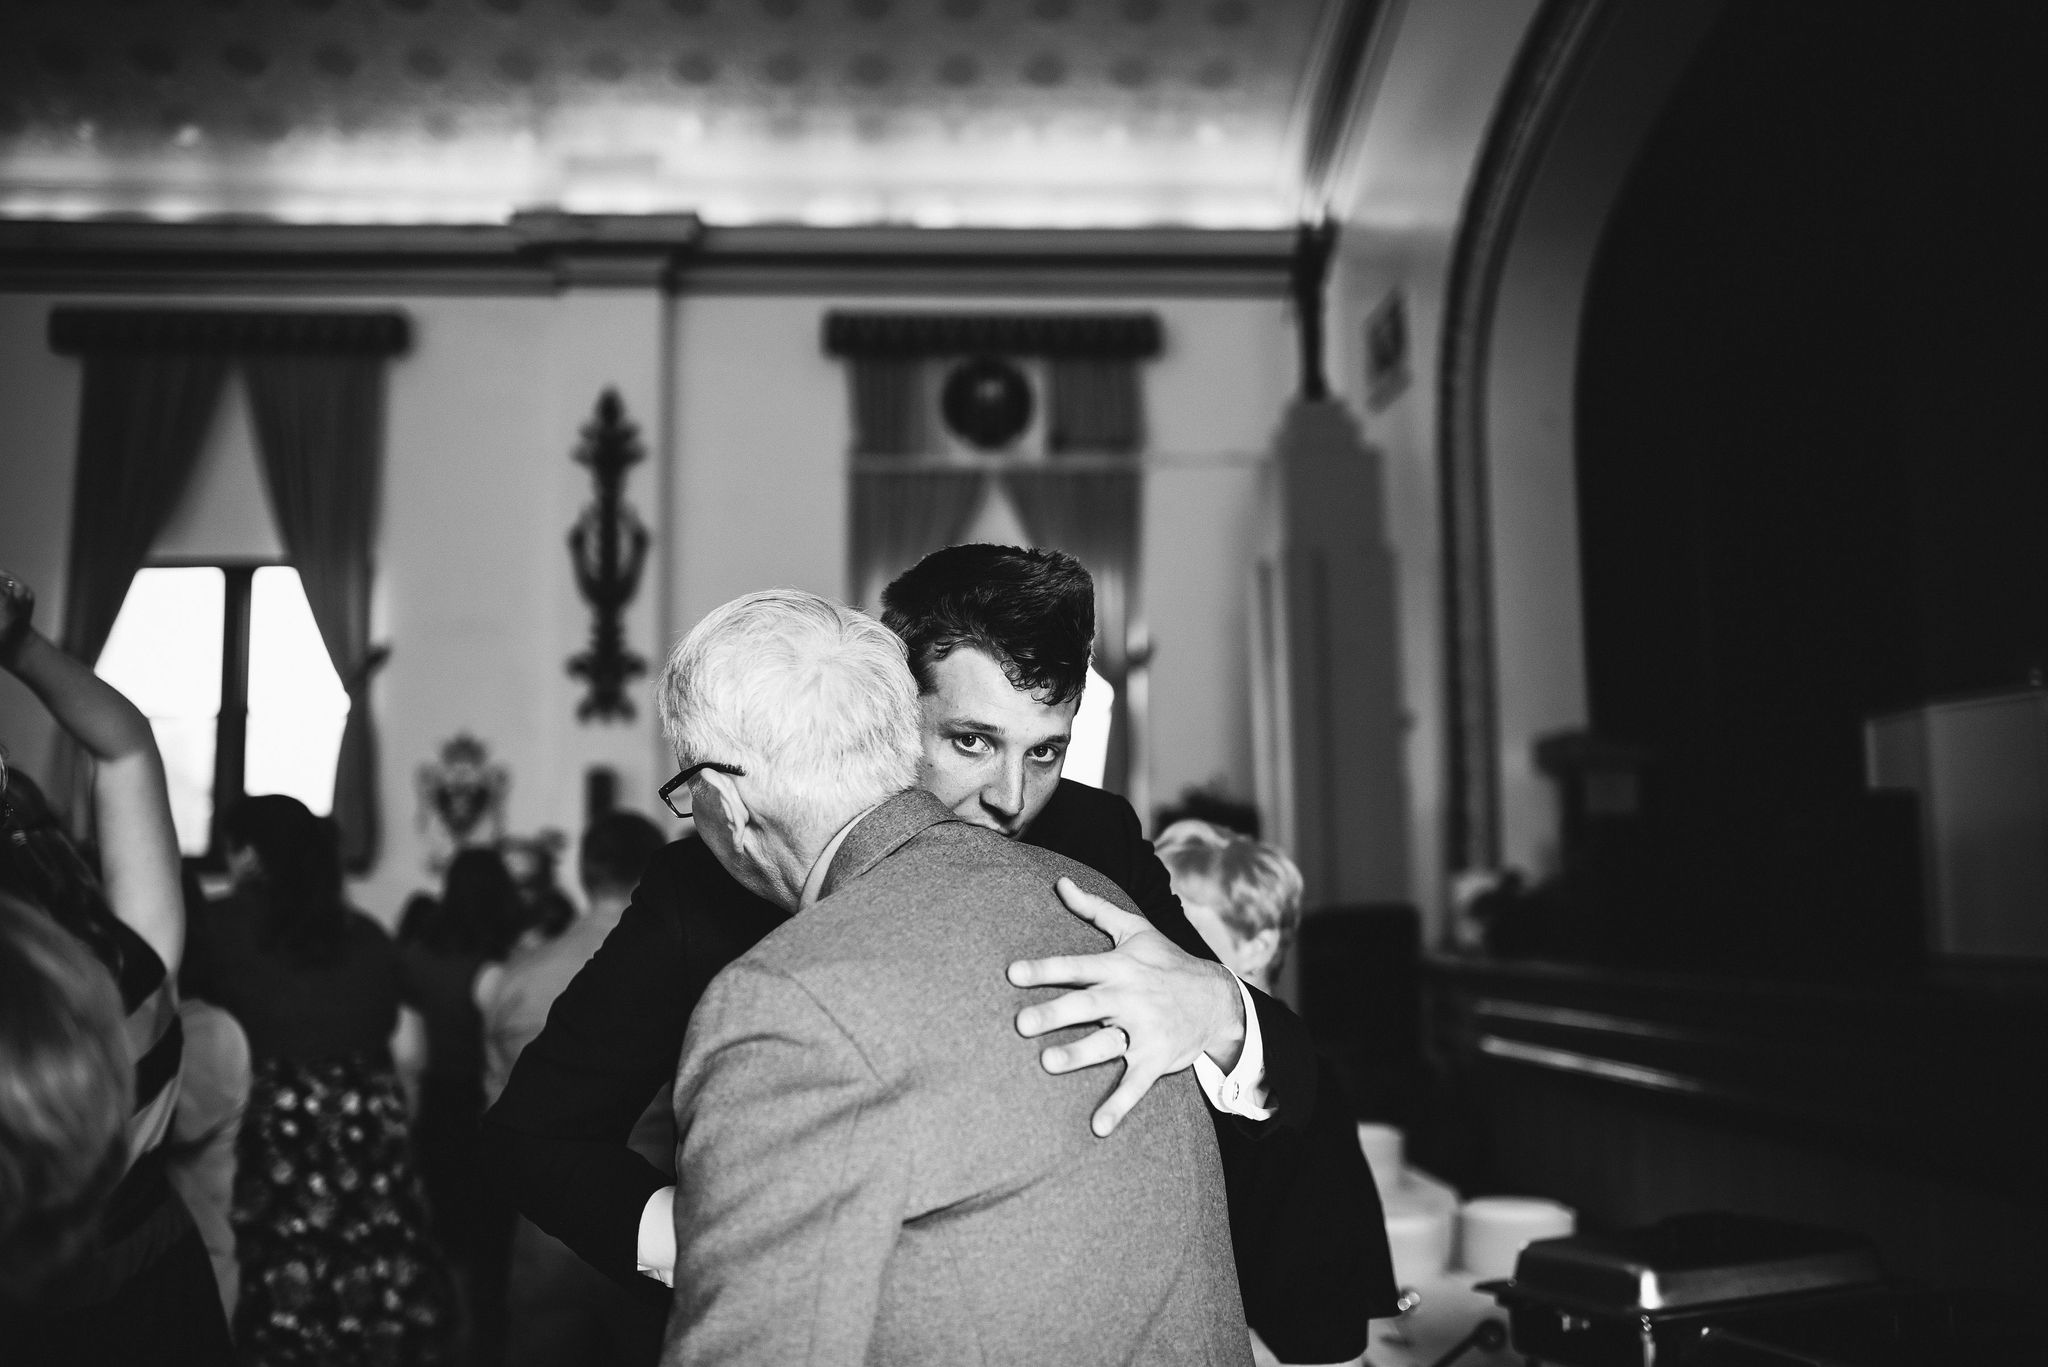 Baltimore, Lithuanian Dance Hall, Maryland Wedding Photographer, Vintage, Classic, 50s Style, Groom with Family, Groom Welcoming Guests, Black and White Photo